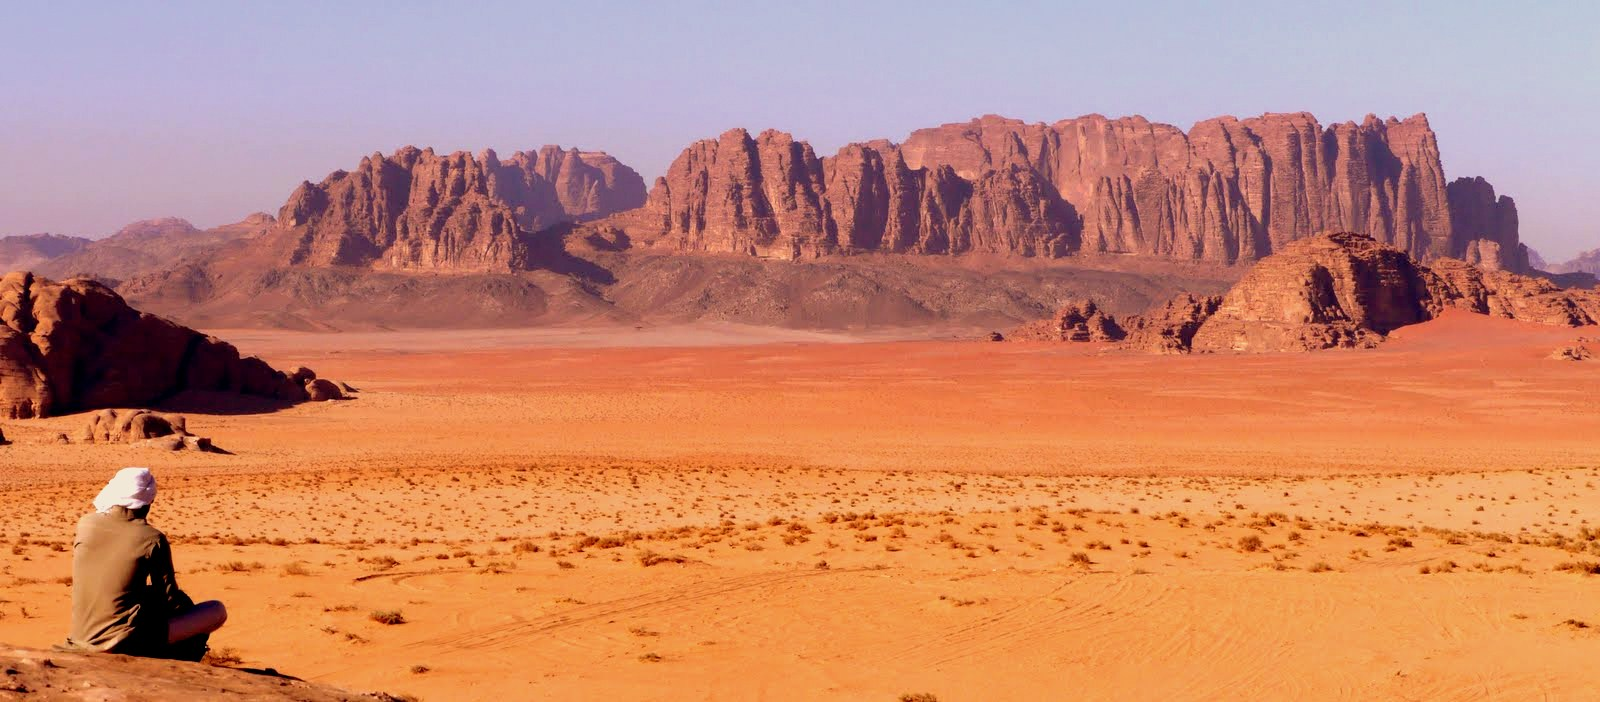 Jordan Trekking Holiday - Wadi Rum and Petra